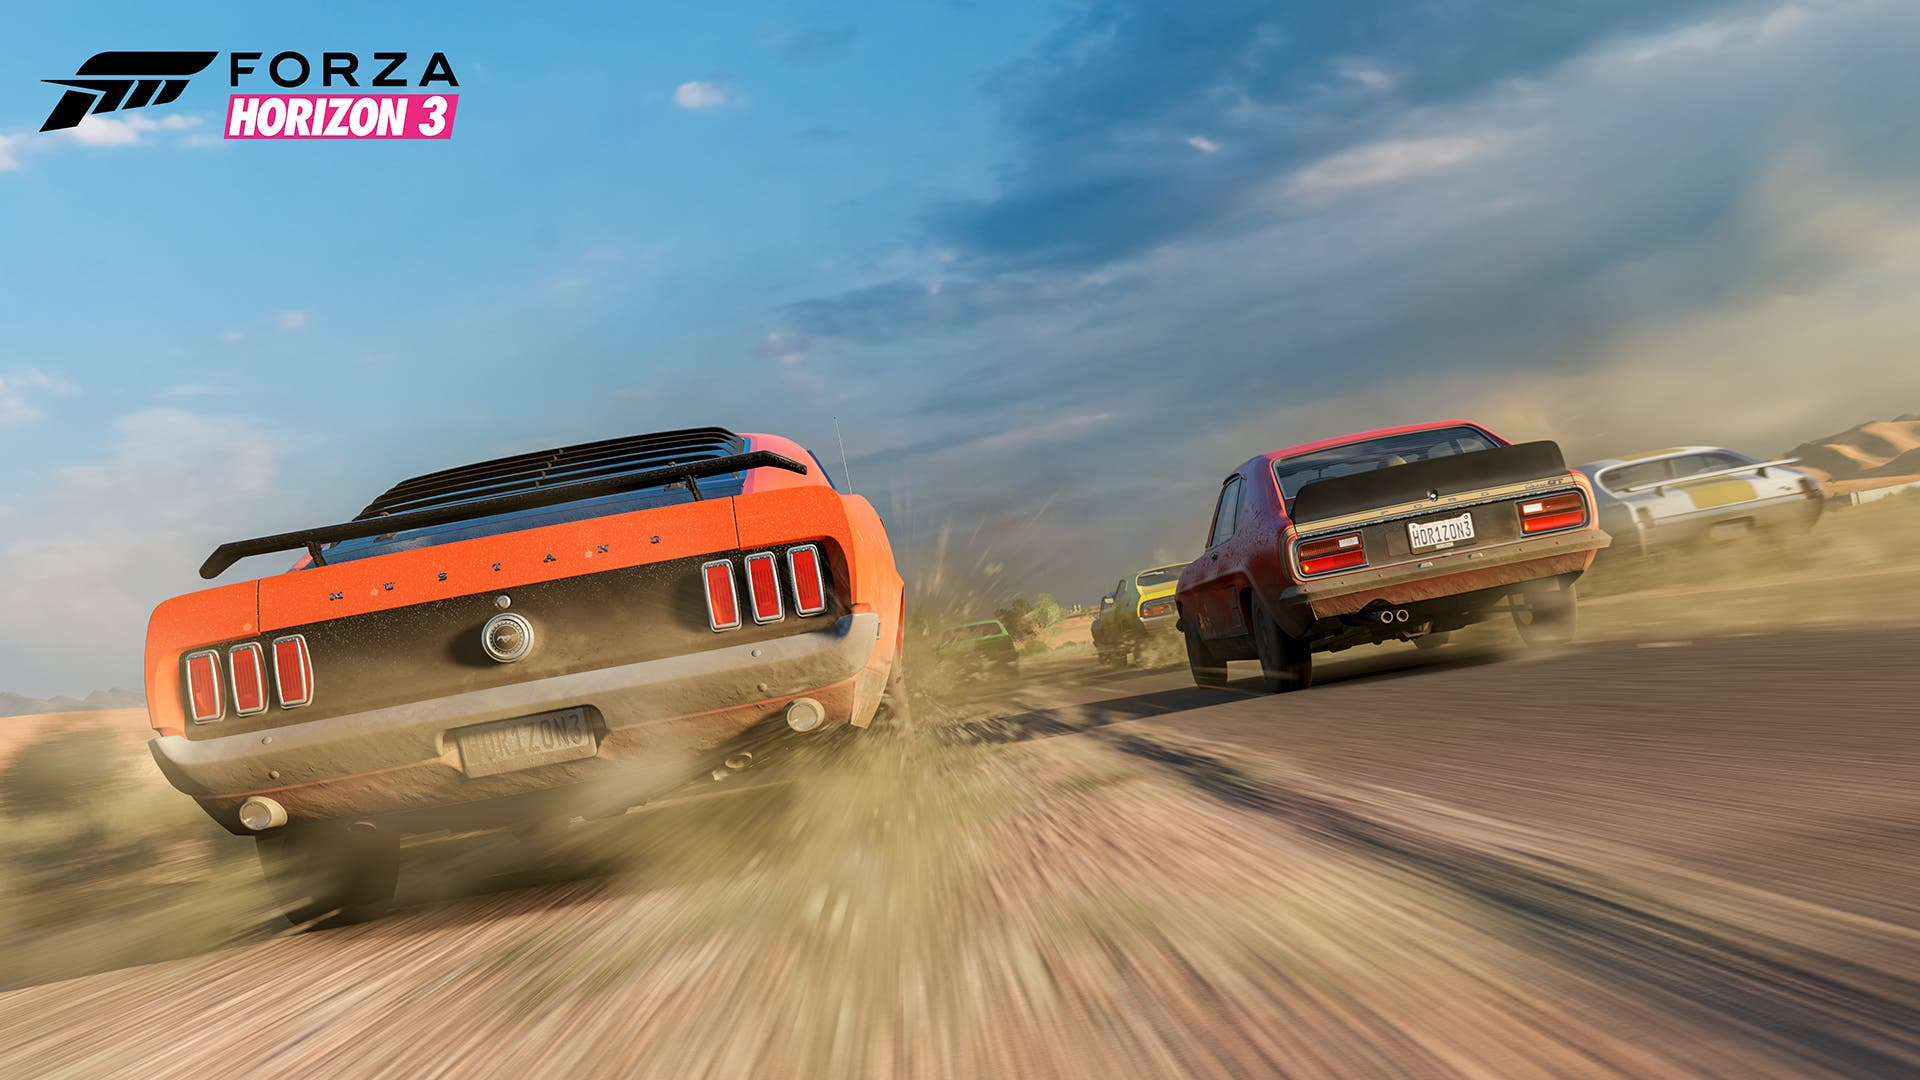 Forza-Horizon-3-Dirt-Road-Mustang